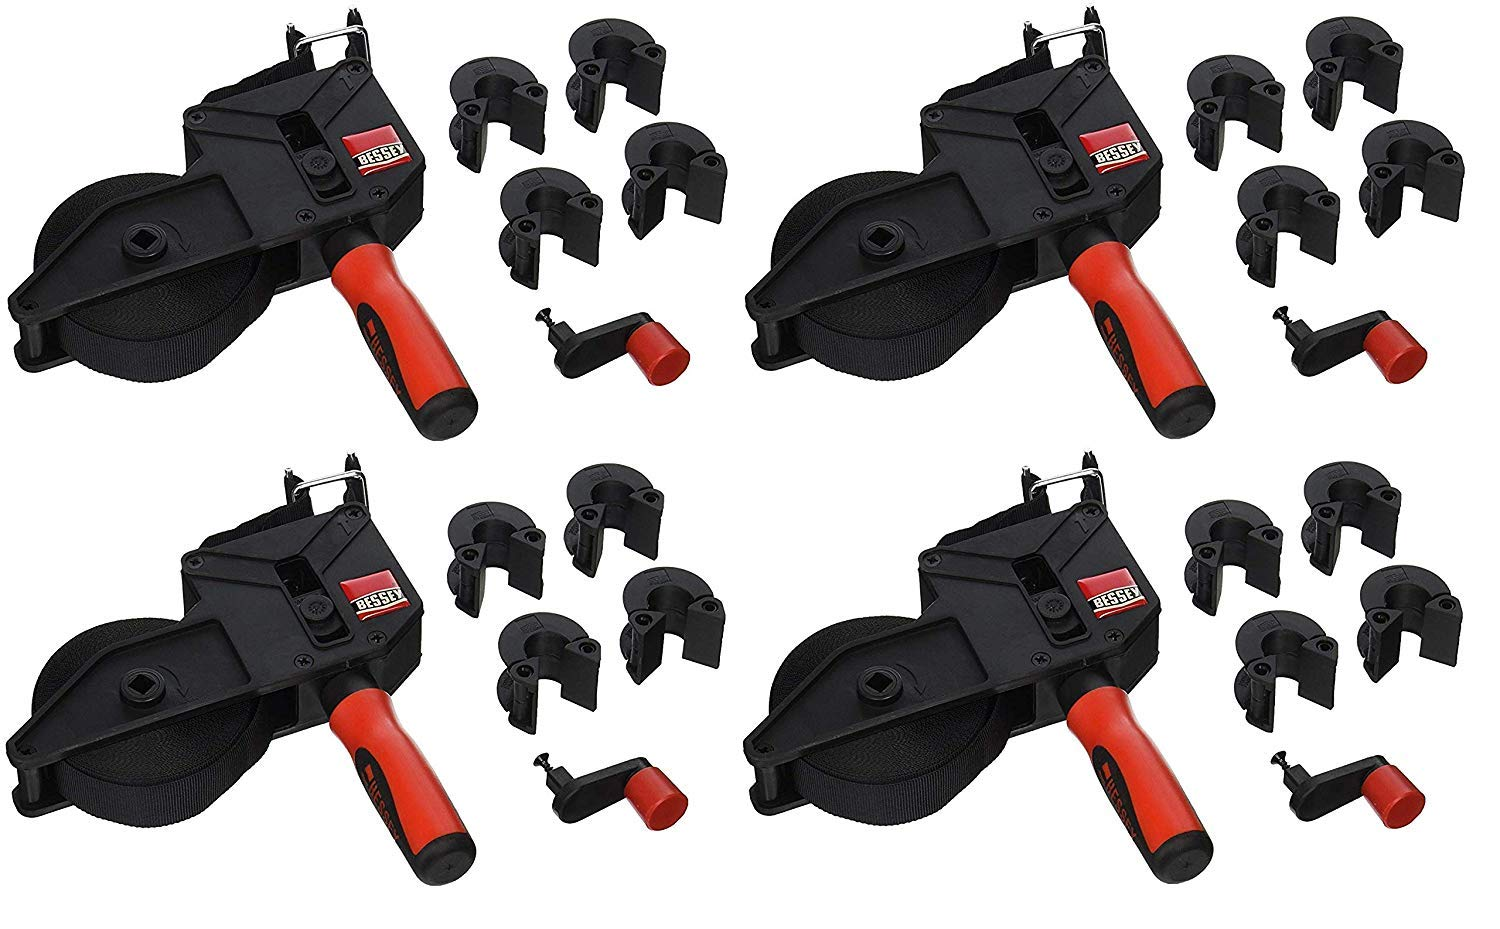 Bessey VAS-23+2K Vario Angle Strap Clamp (Pack of 4) by Bessey (Image #1)